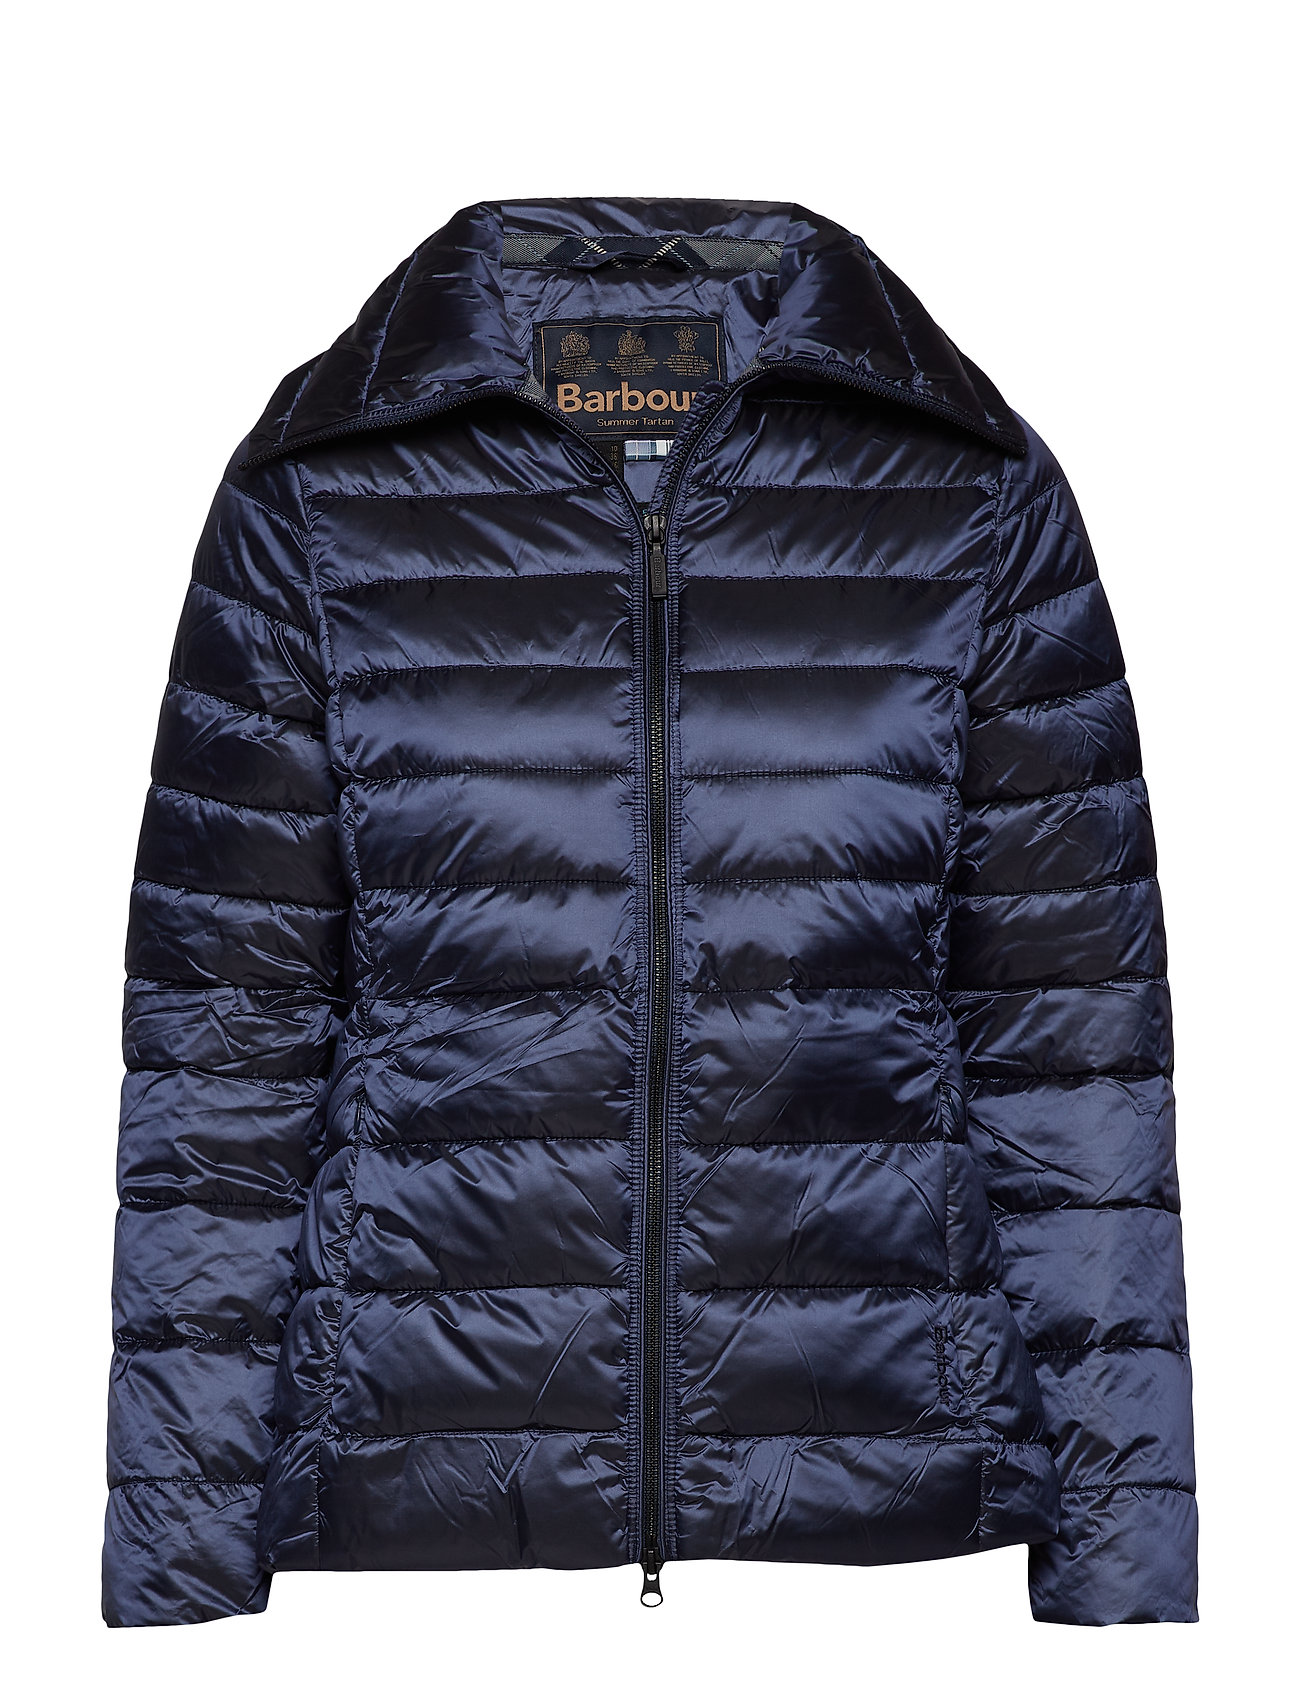 Barbour Barbour Drovers Quilt